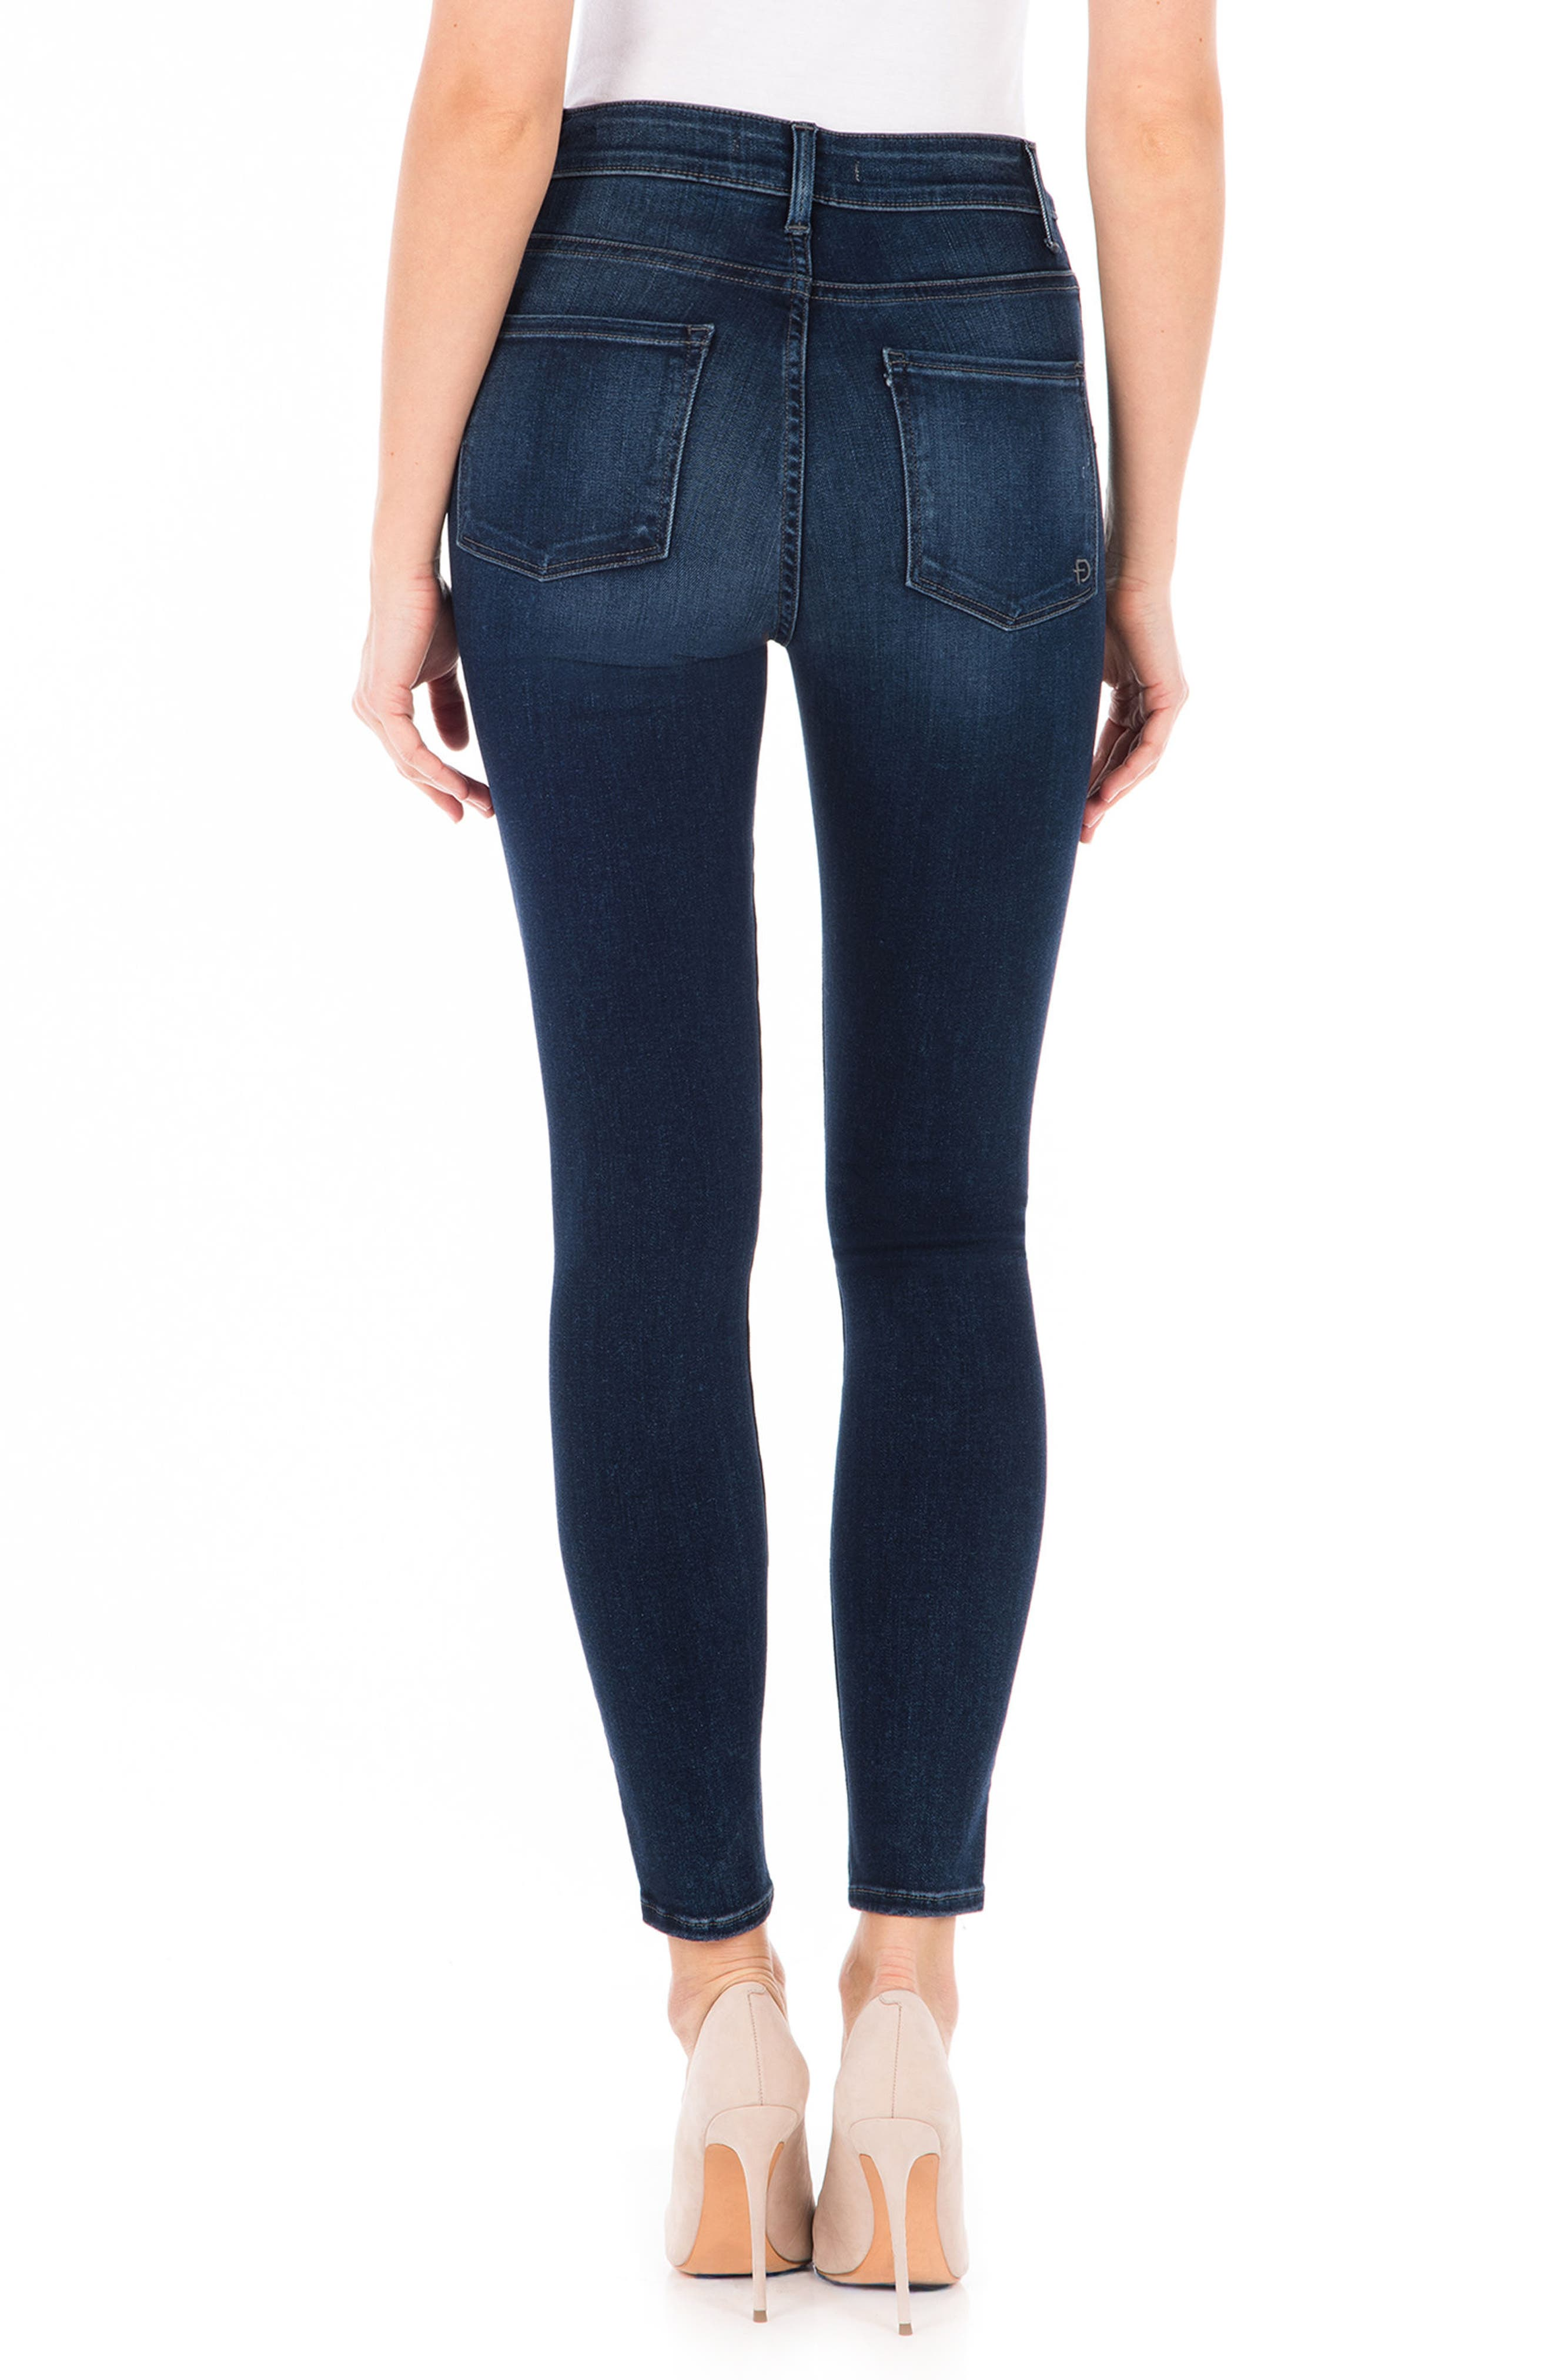 Luna High Waist Skinny Jeans,                             Alternate thumbnail 2, color,                             BLUE SUEDE